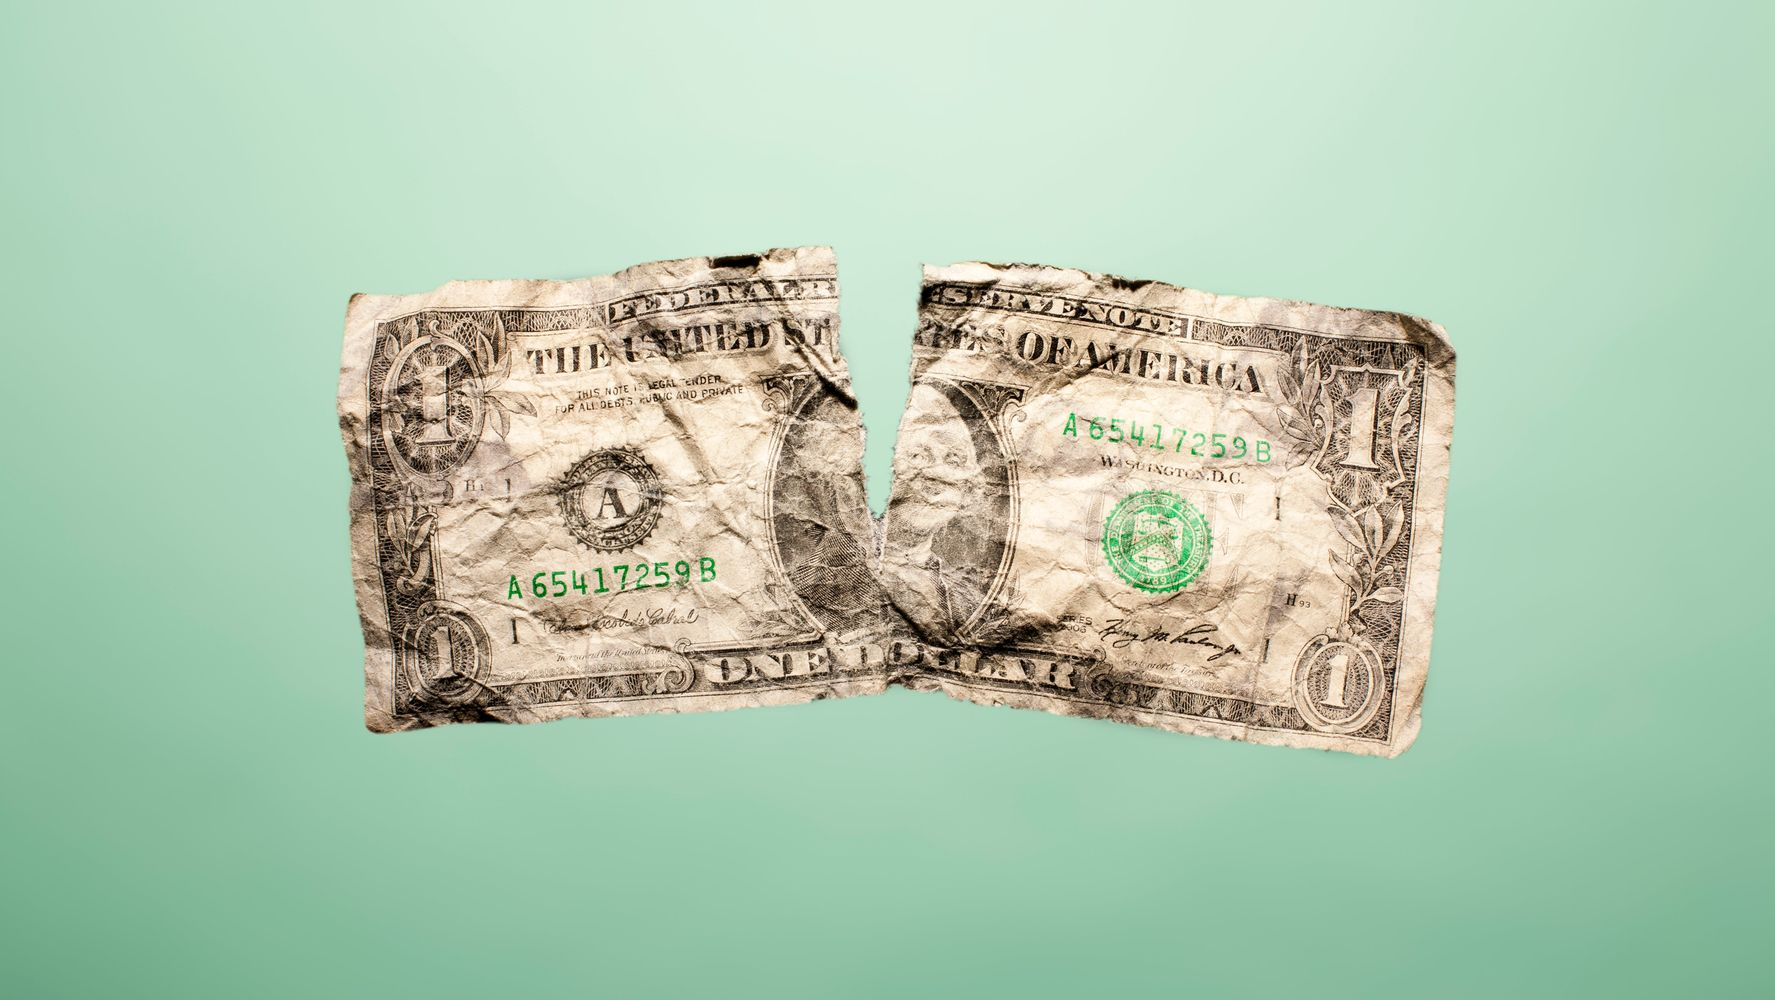 The Root Cause Of Your Money Problems Could Be An Actual